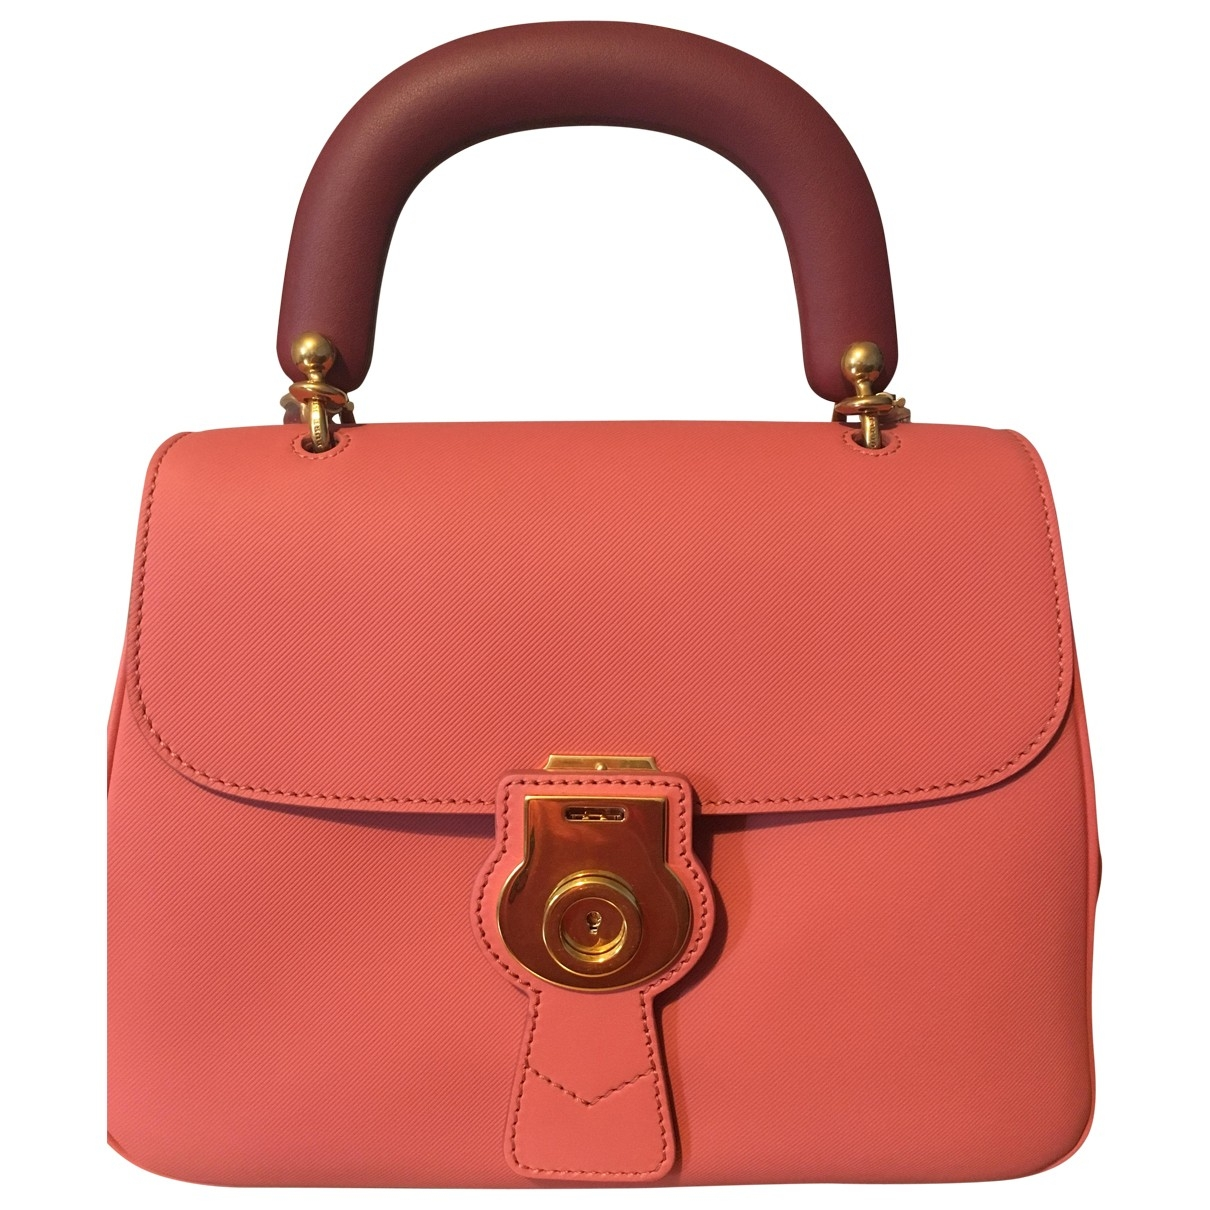 Burberry DK 88 Pink Leather handbag for Women \N